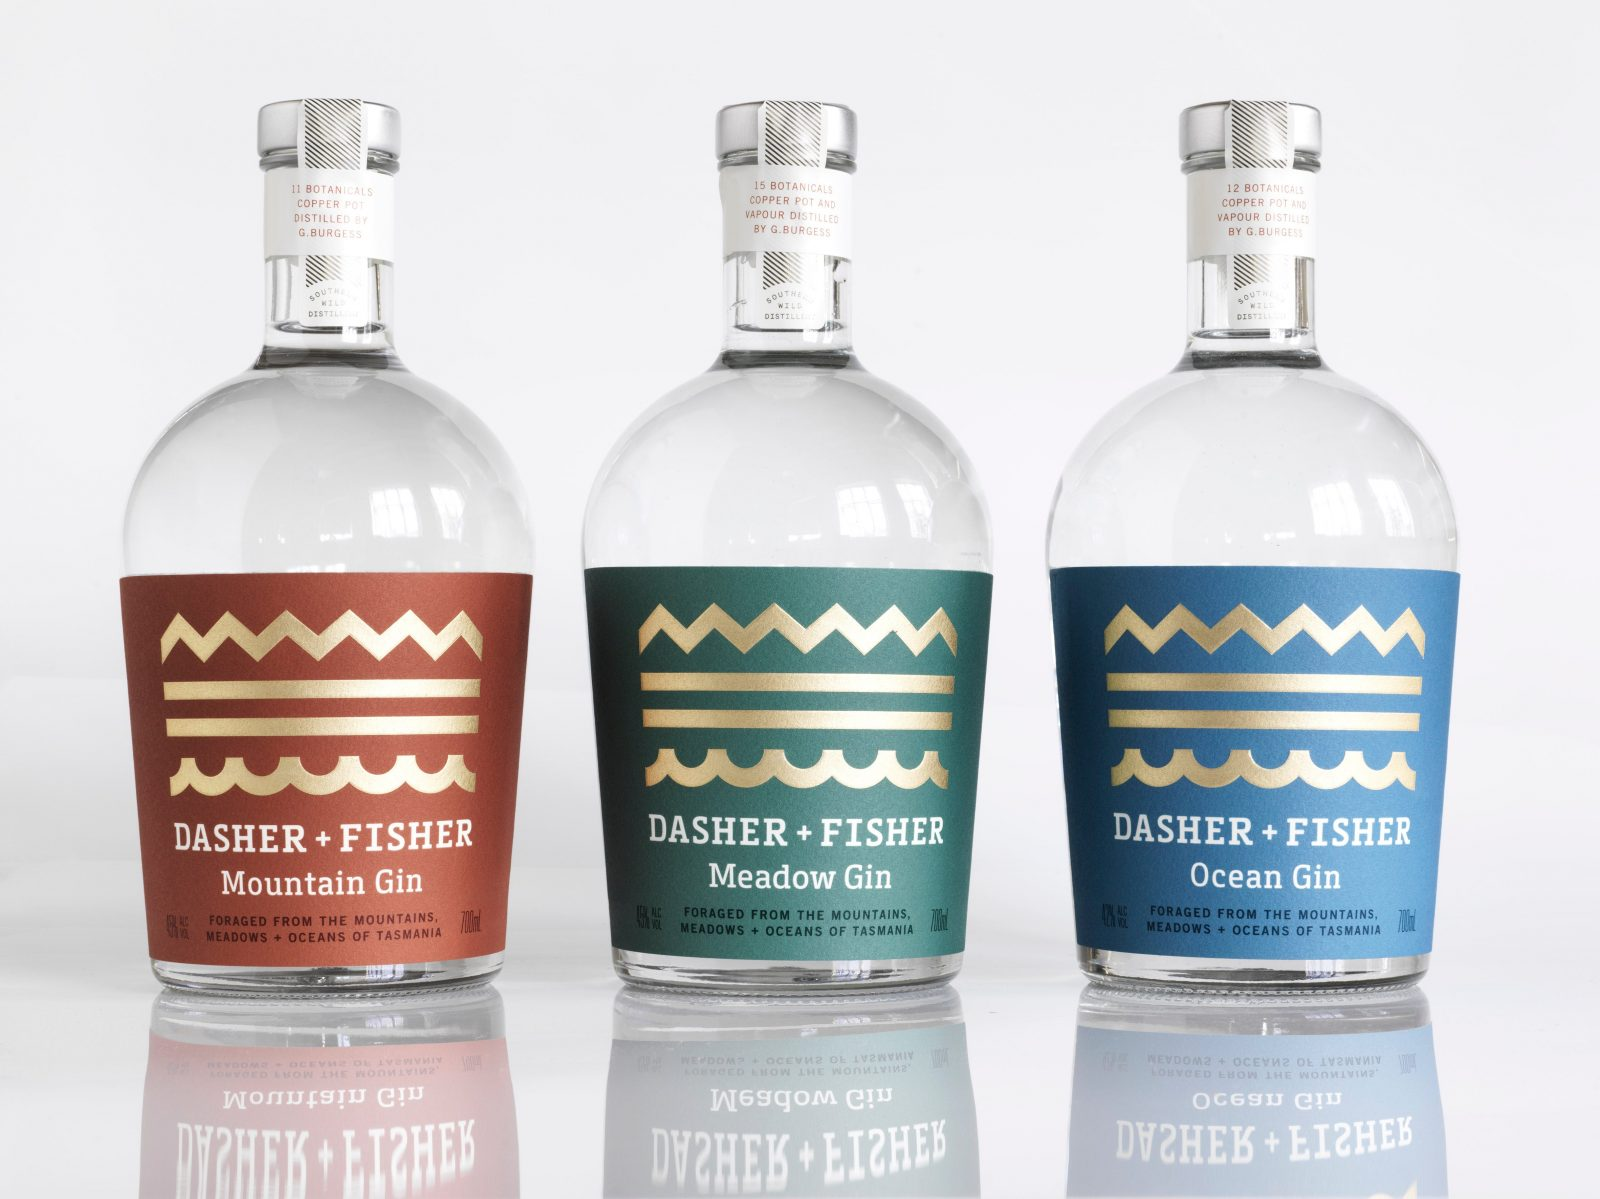 DASHER + FISHER Mountain, Meadow and Ocean bottle image.